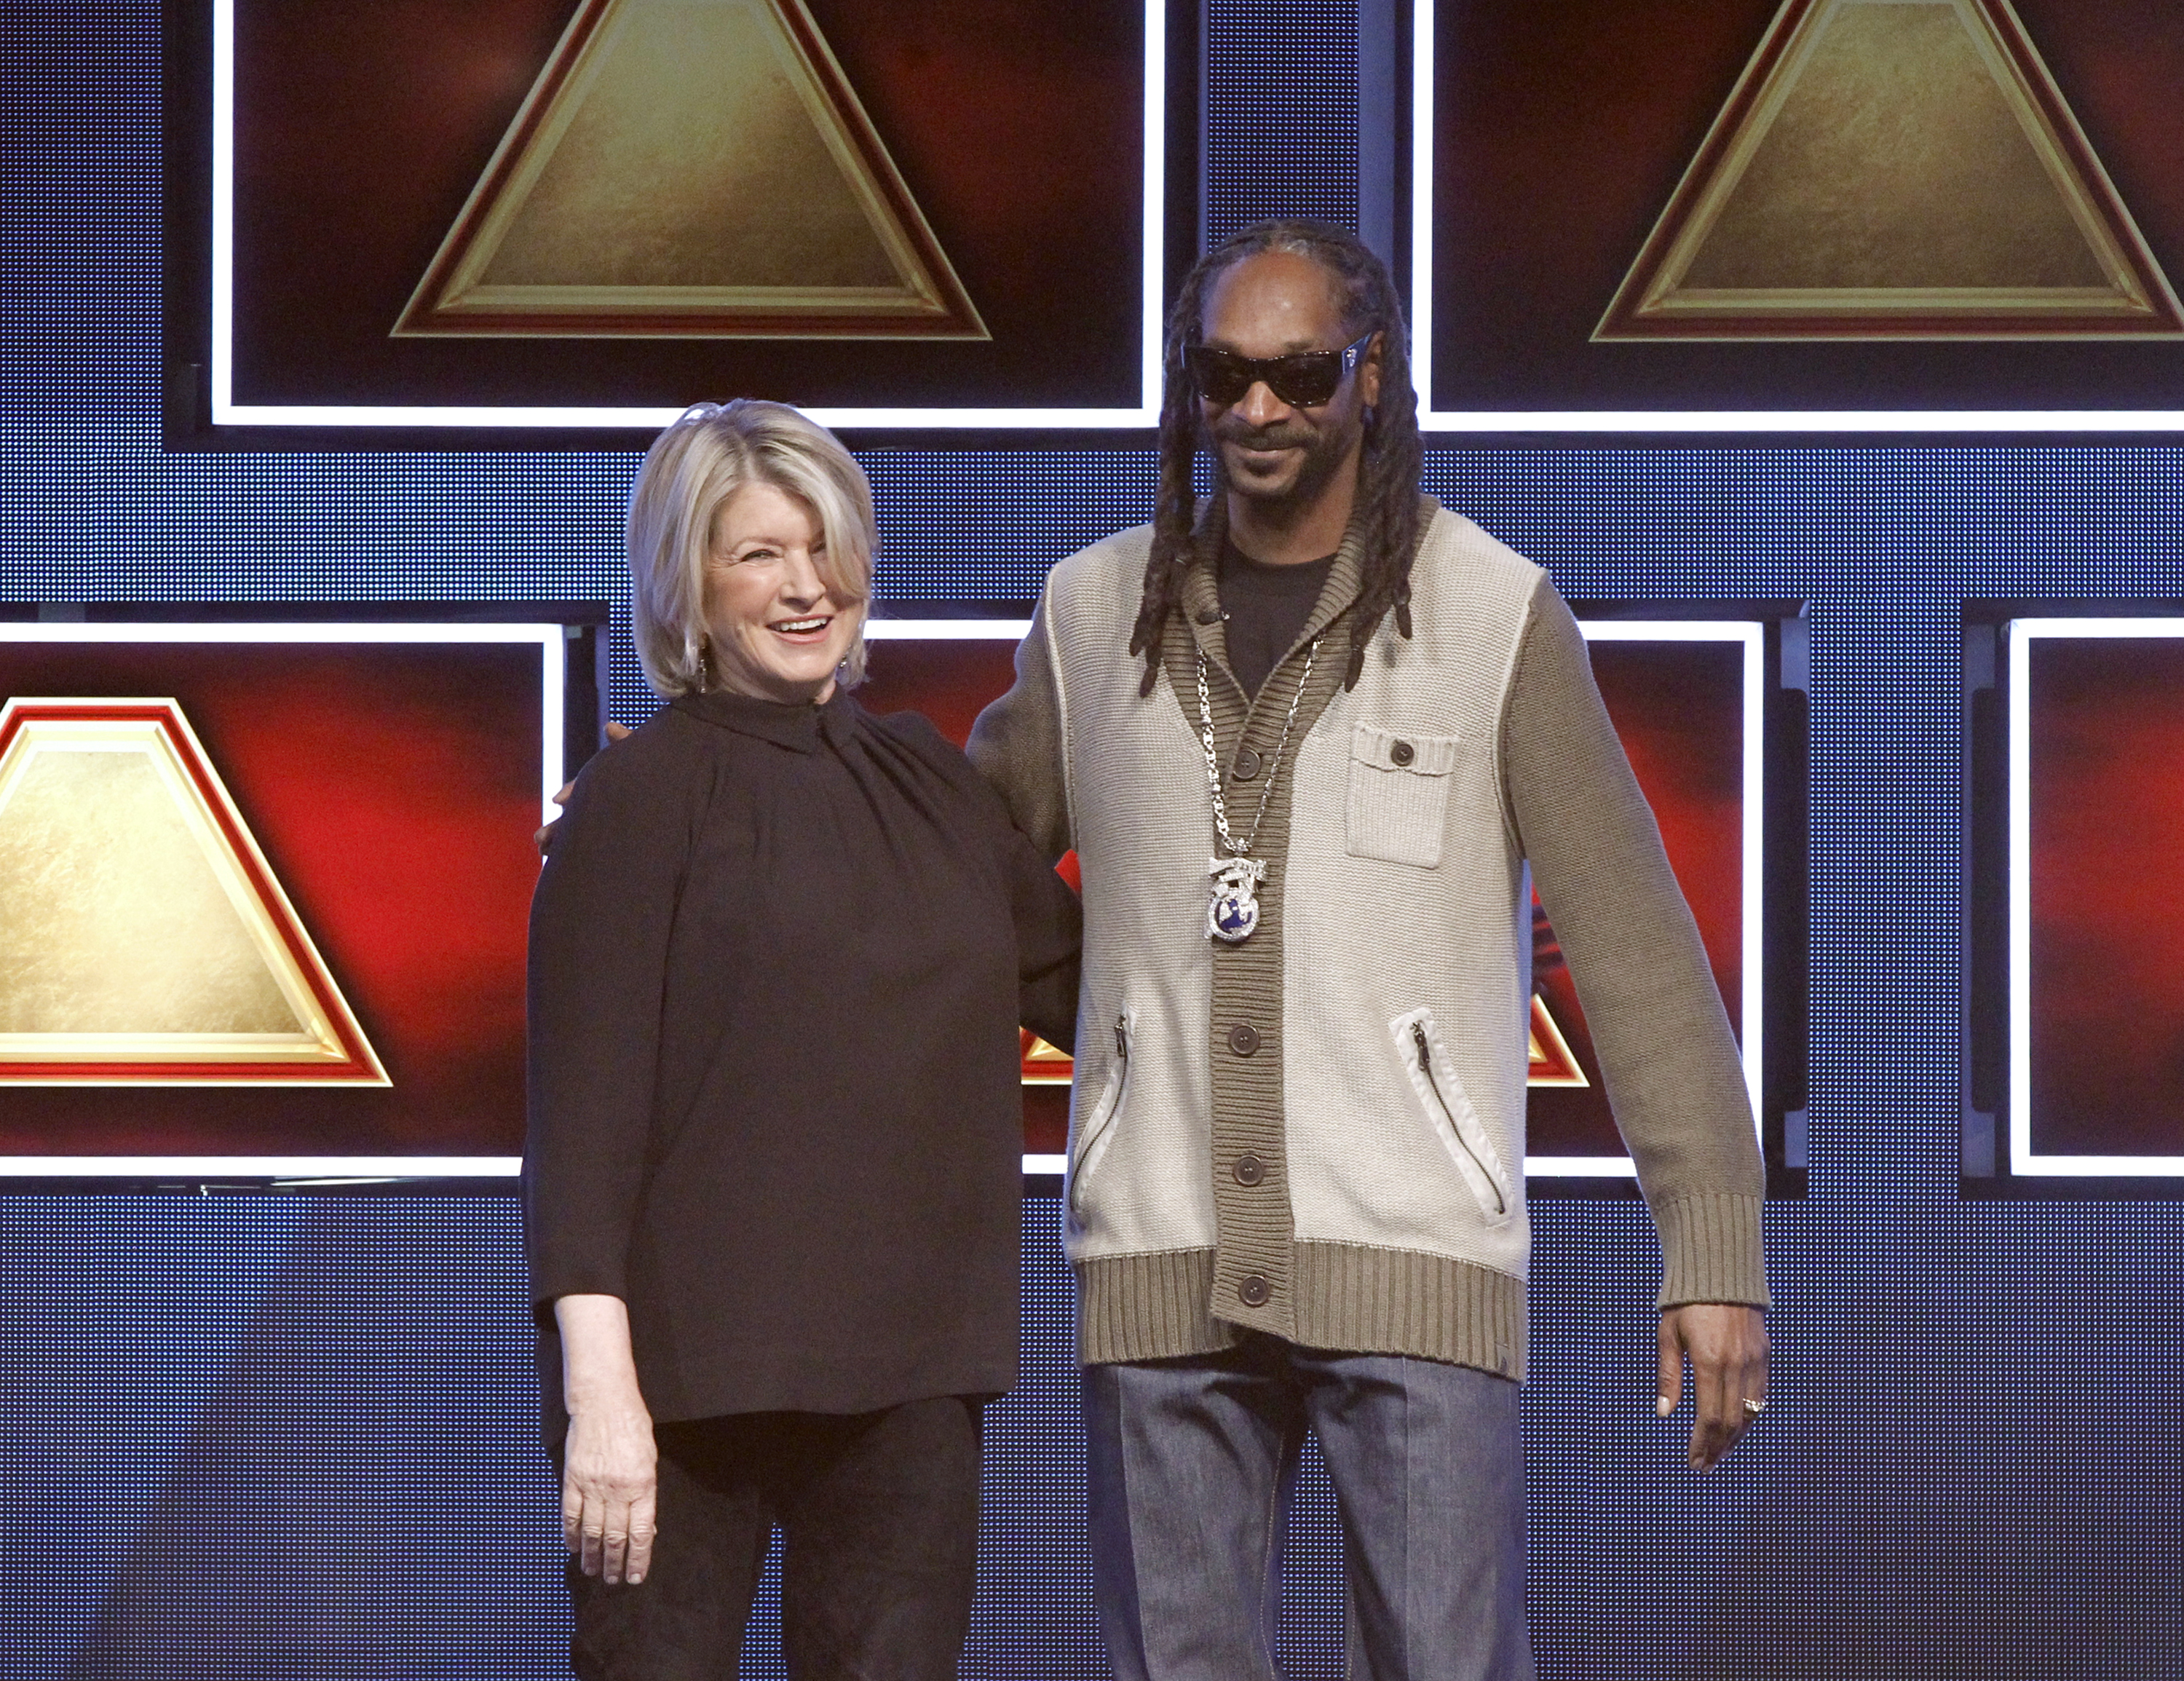 Martha Stewart and Snoop Dogg compete for prizes on a recent ABC game show.